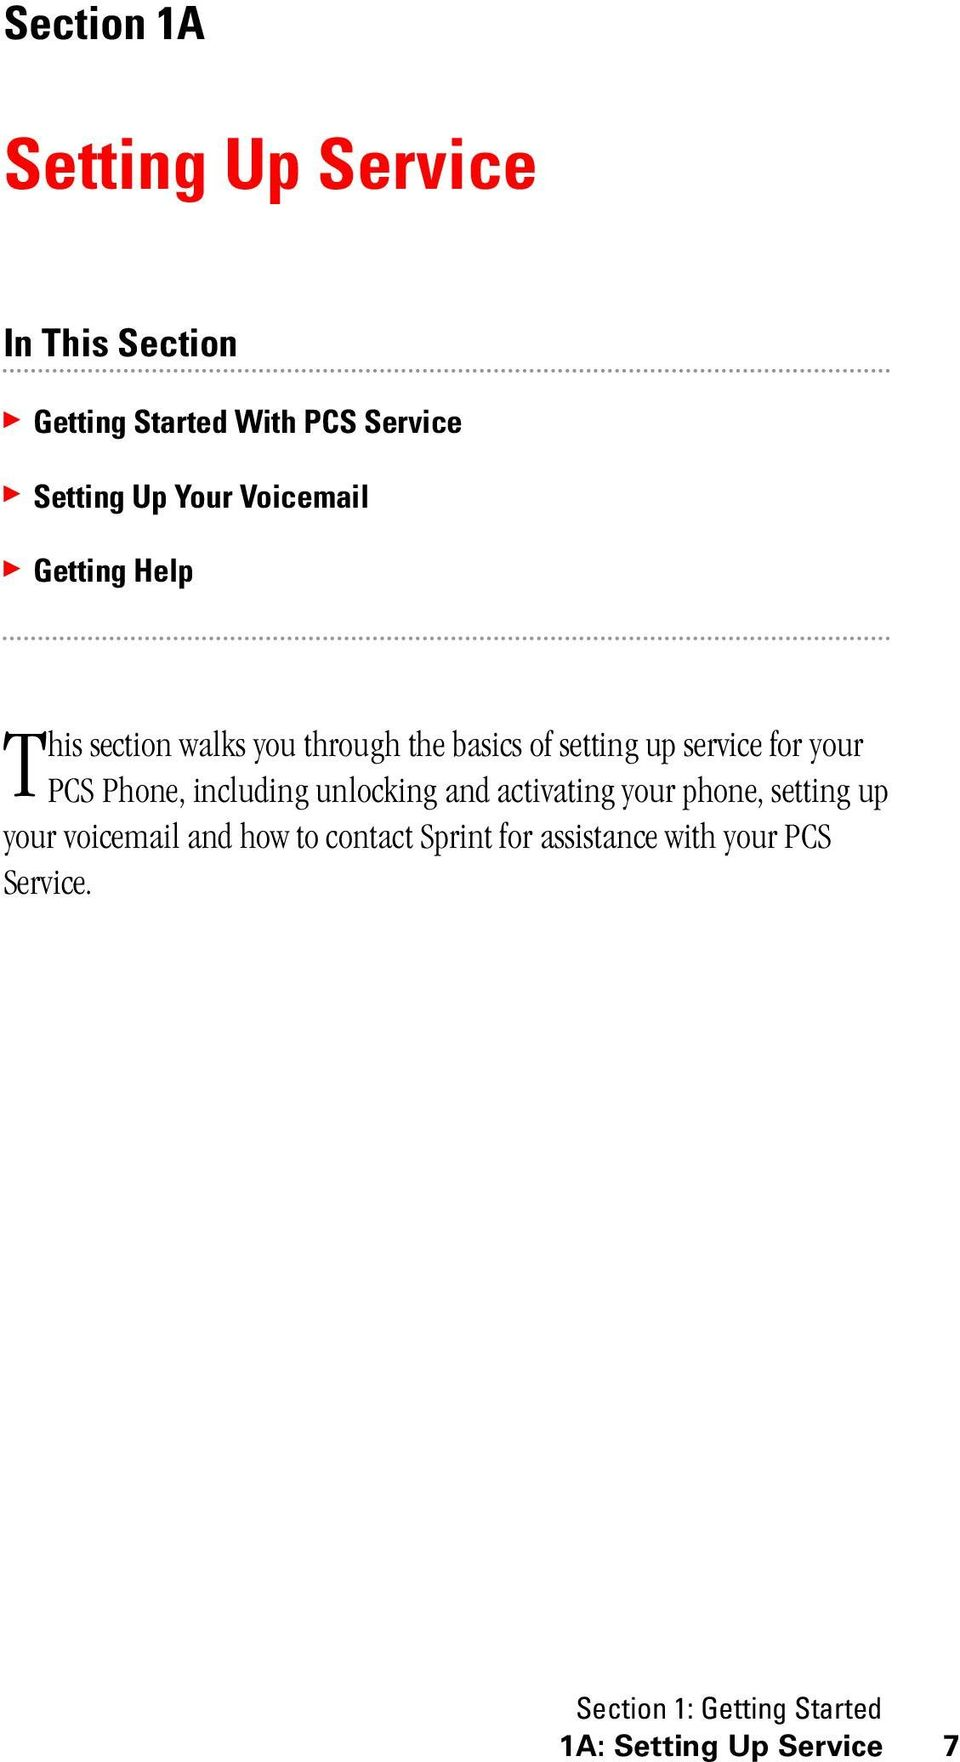 PCS Phone, including unlocking and activating your phone, setting up your voicemail and how to